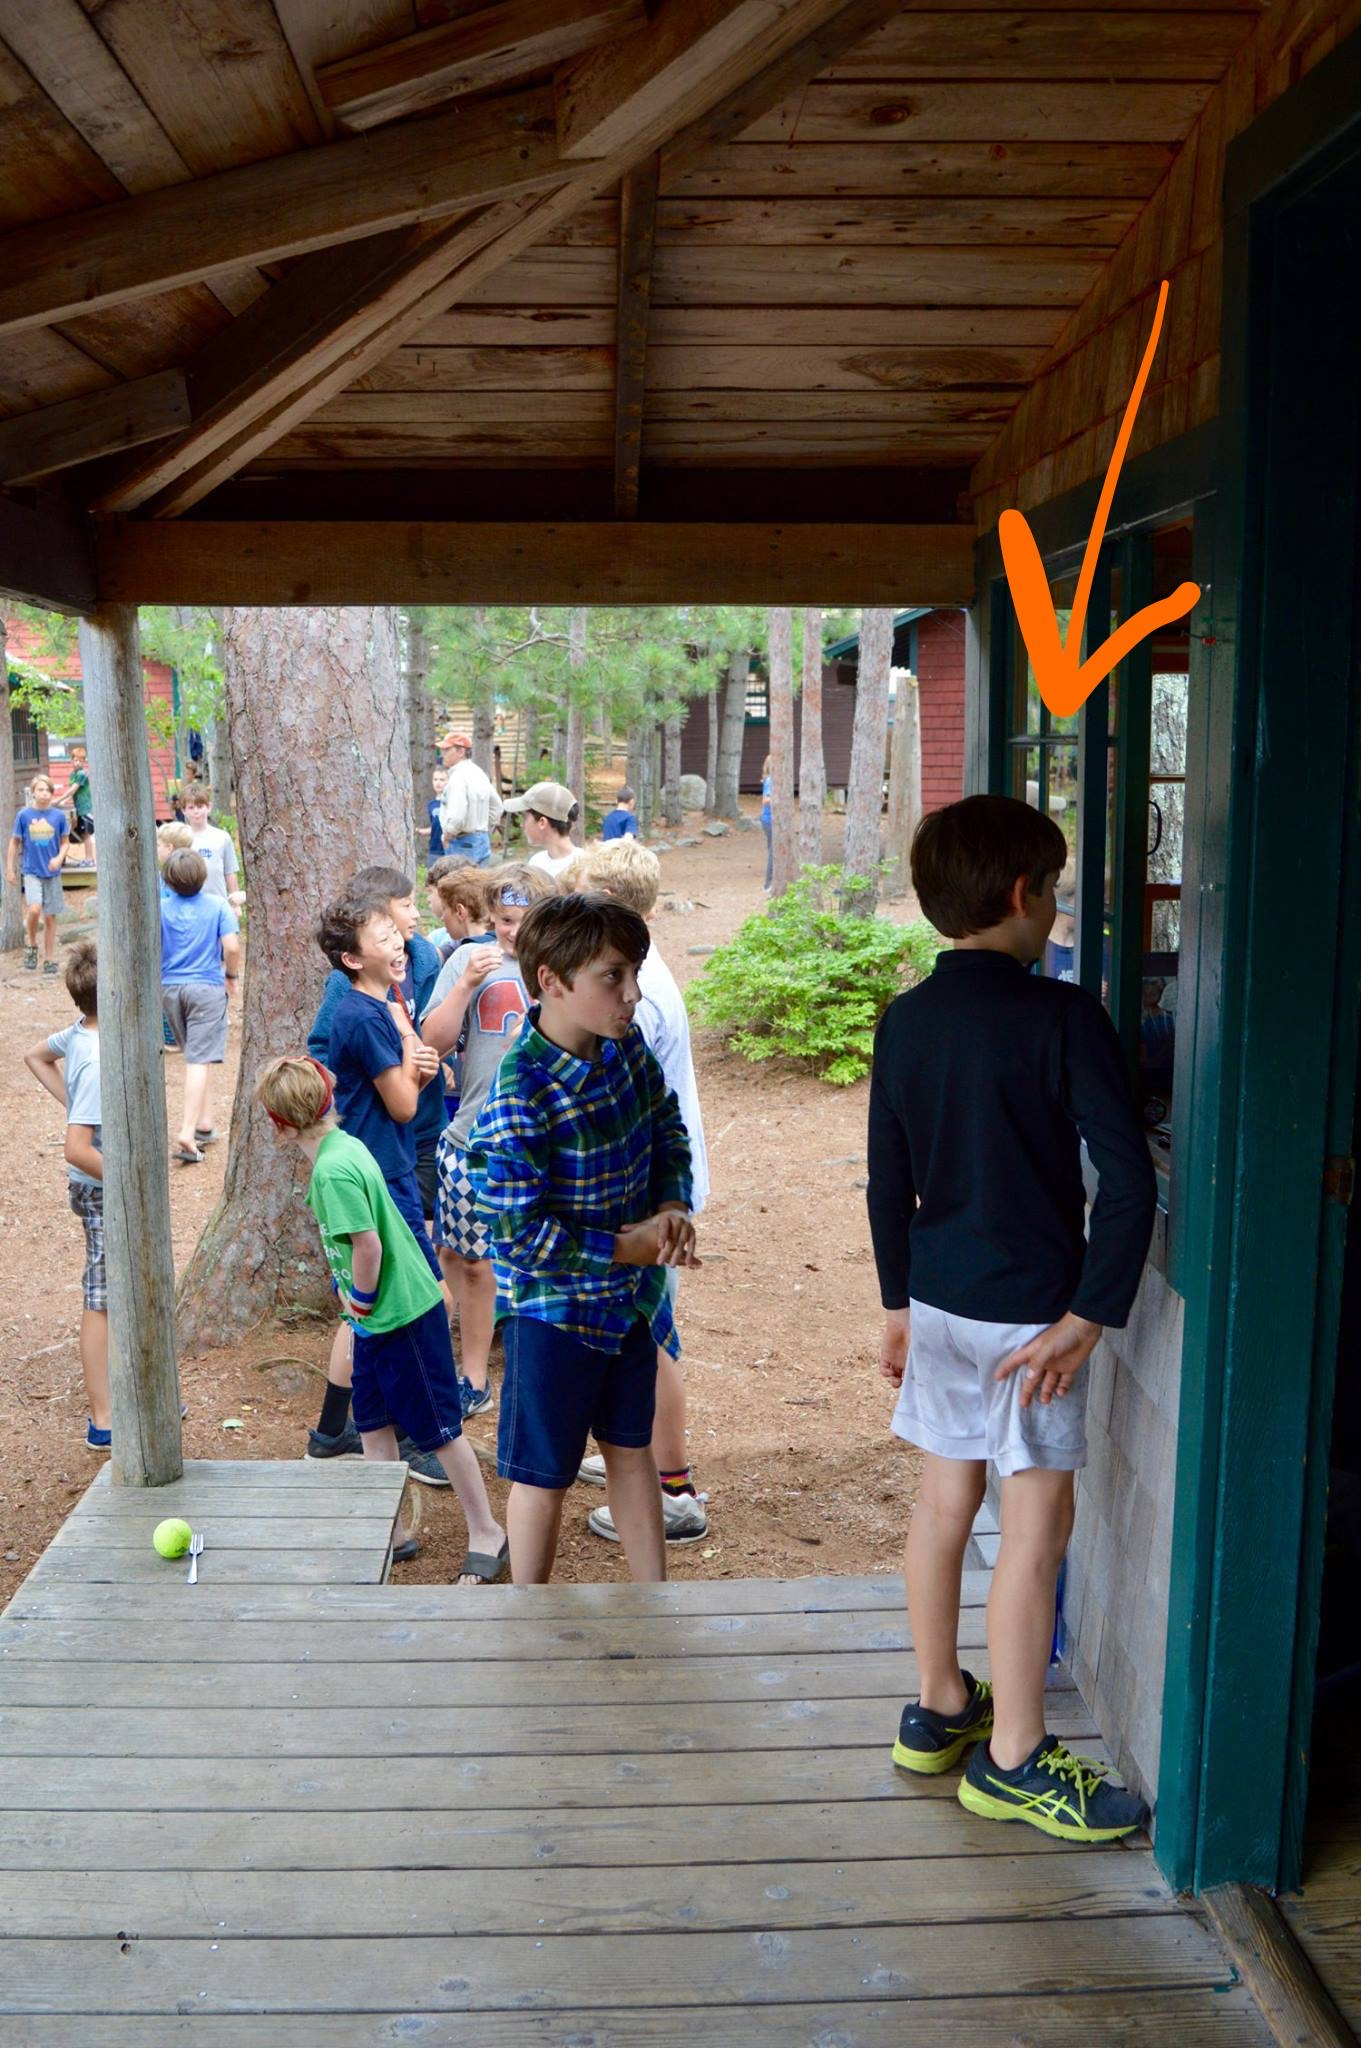 OMG, how precious are his legs?! The kids are in line signing up for War Game team preference.